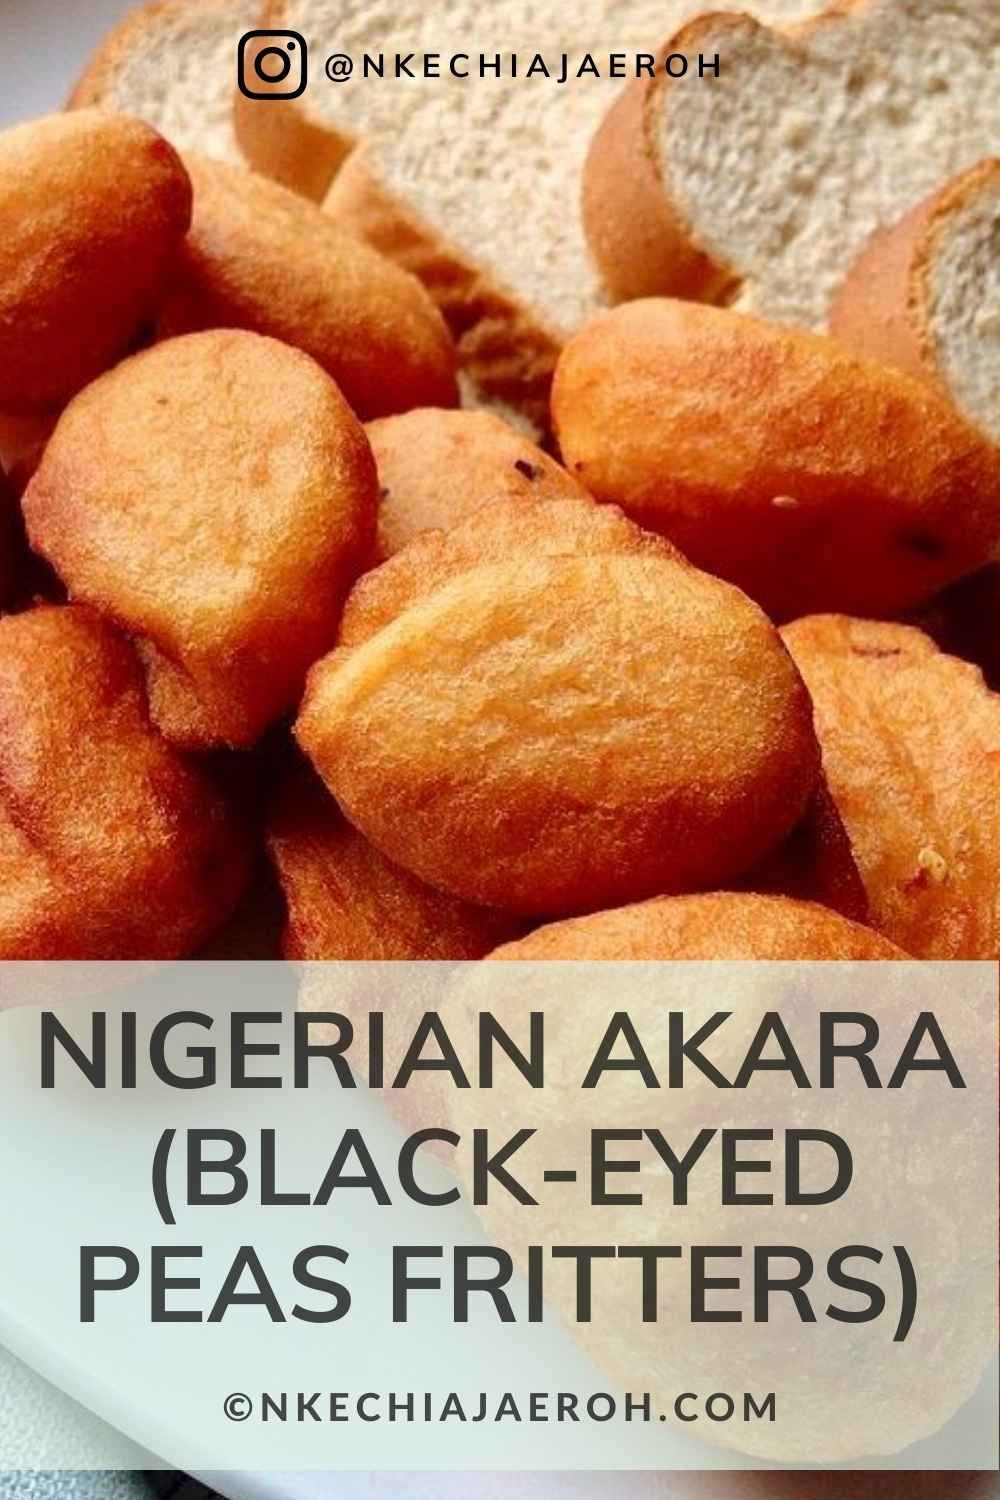 Learn how to make the best Nigerian Akara, also known as Black-eyed peas fritters. Akara, equally called beans cakes, beans ball, koosé, or acarajé, is a popular street food enjoyed across Africa and beyond. To make Akara, you start by de-skinning/peeling the beans (black-eyed peas), then you blend it into a paste, and then fry them up. Eat these fritters with bread, corn pudding, or custard. #Akara #Beansfritters #Beansrecipe #Nigerianfood #blackeyedpeasfritters #Howtomakeakara #Africanfood